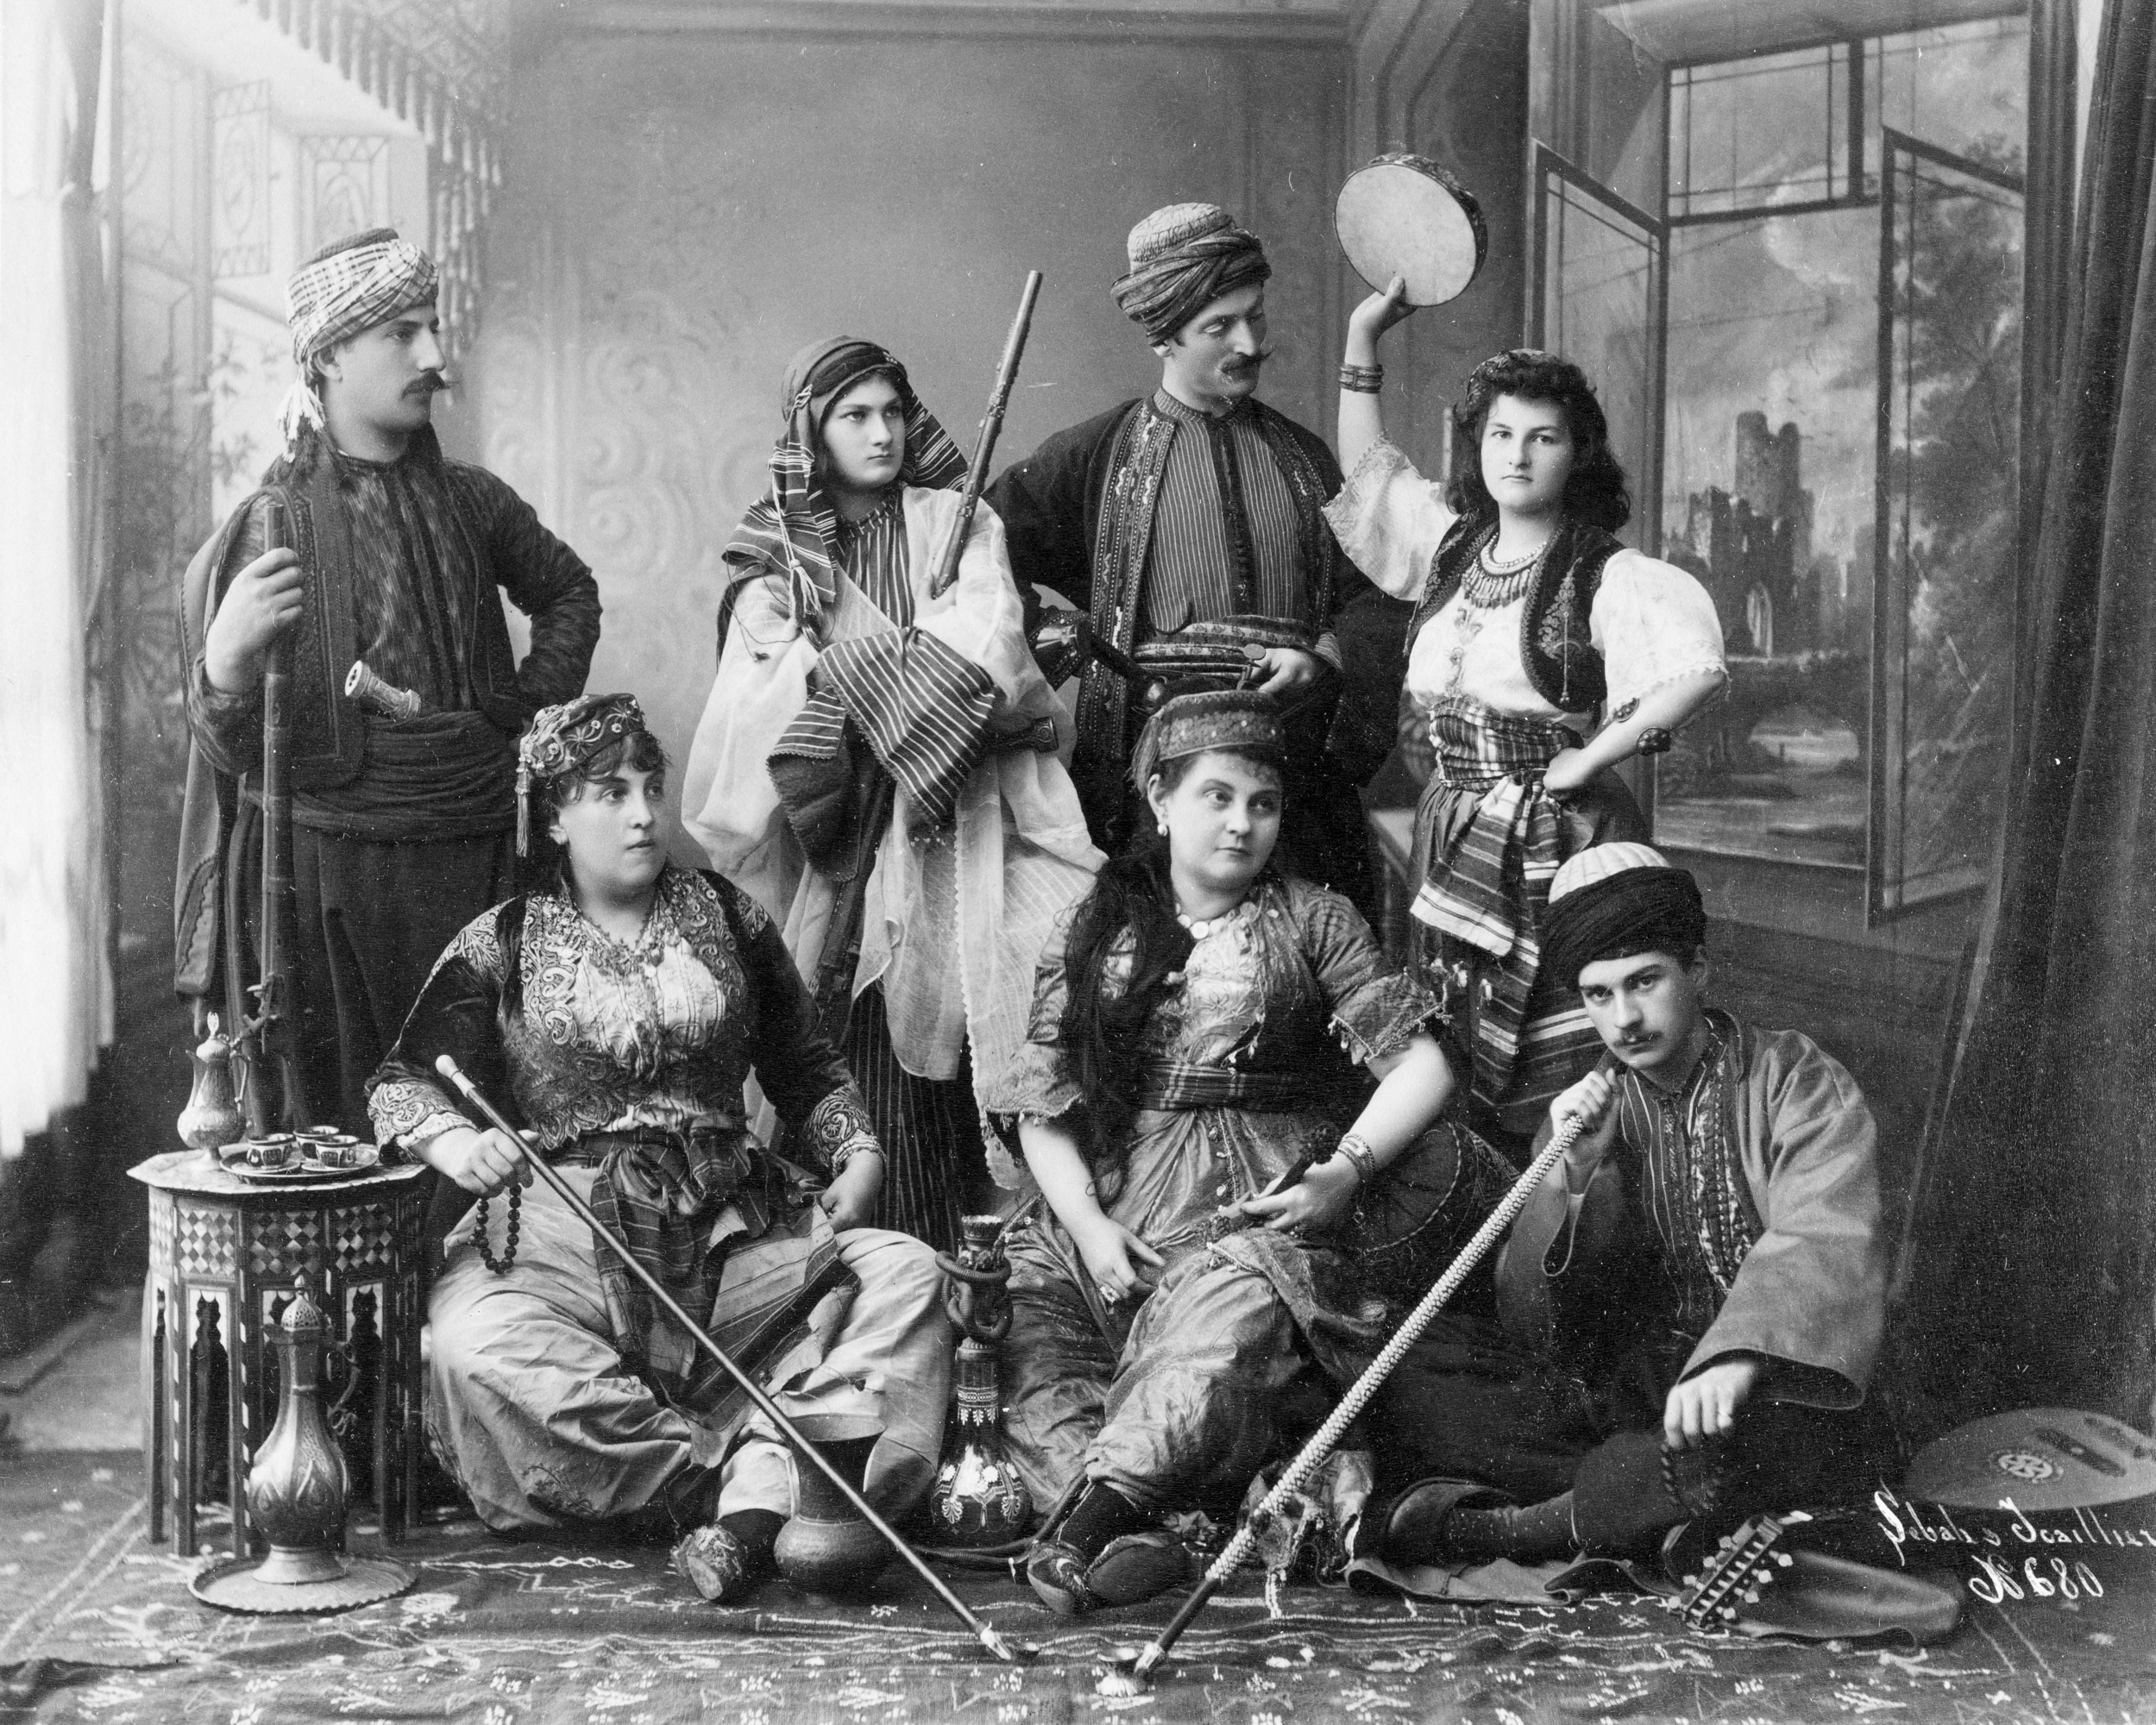 Women and men in Ottoman costume